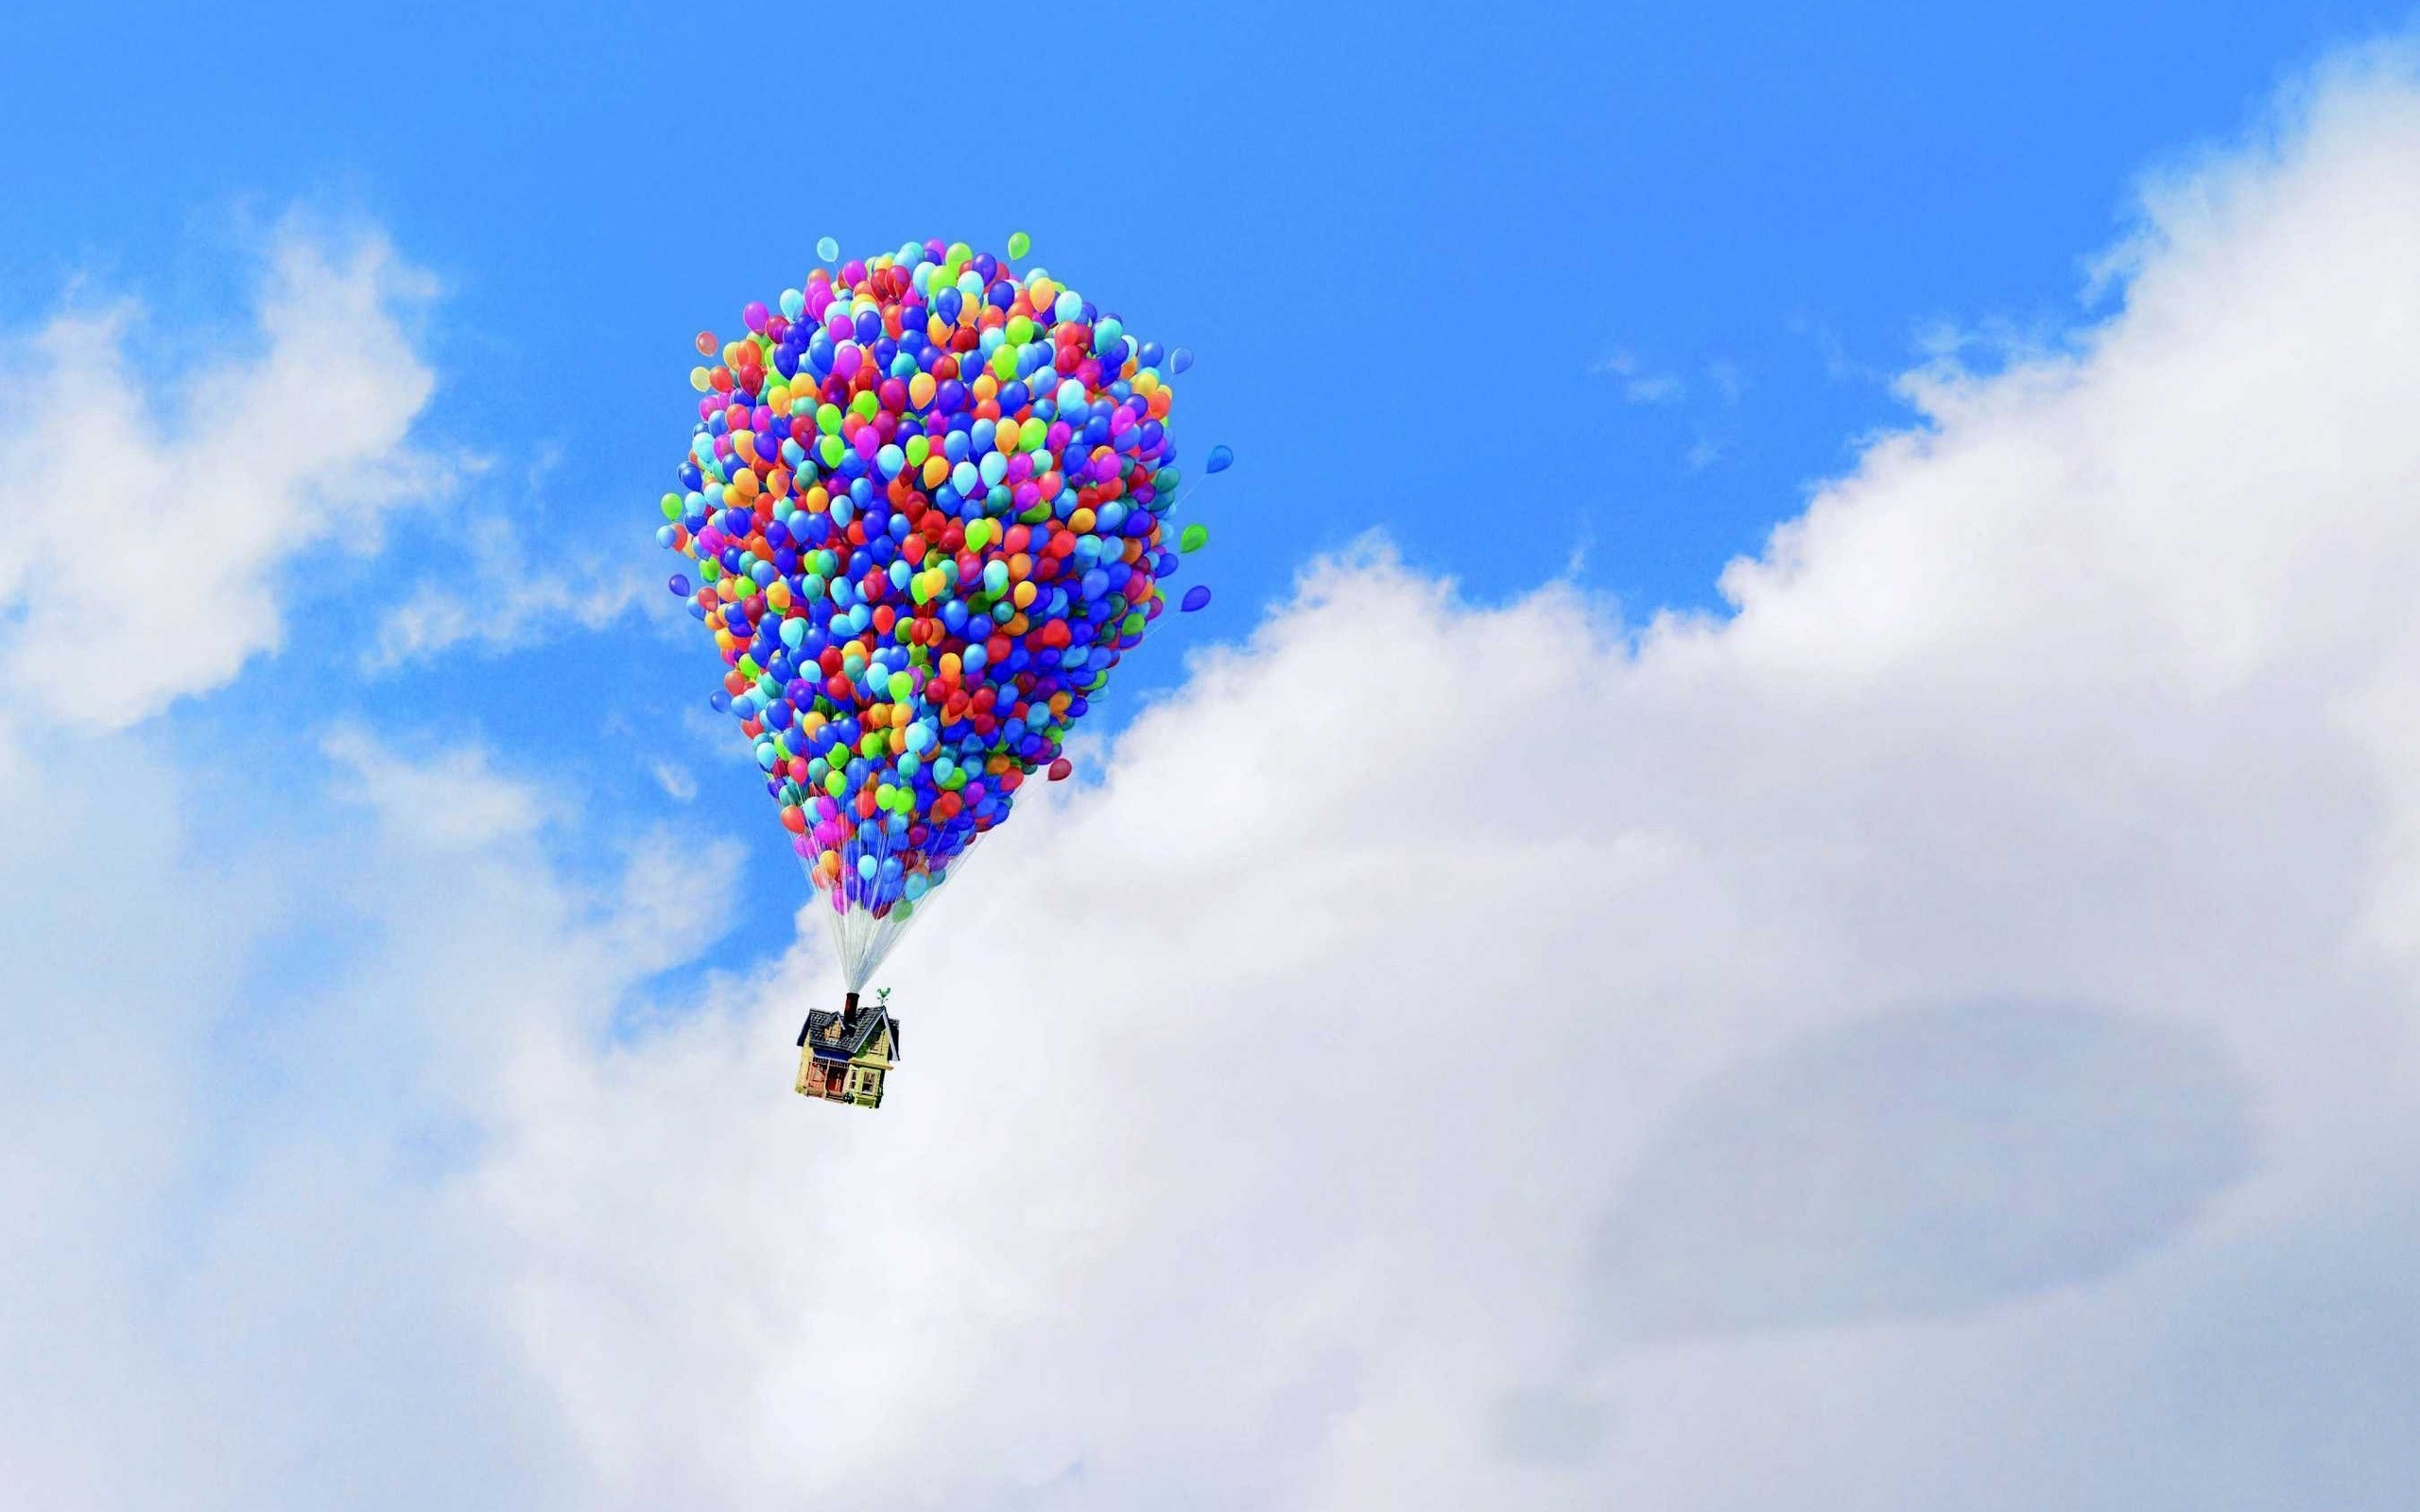 Wallpaper Up Up pixar Pixar animation balloons house sky clouds on 2560x1600